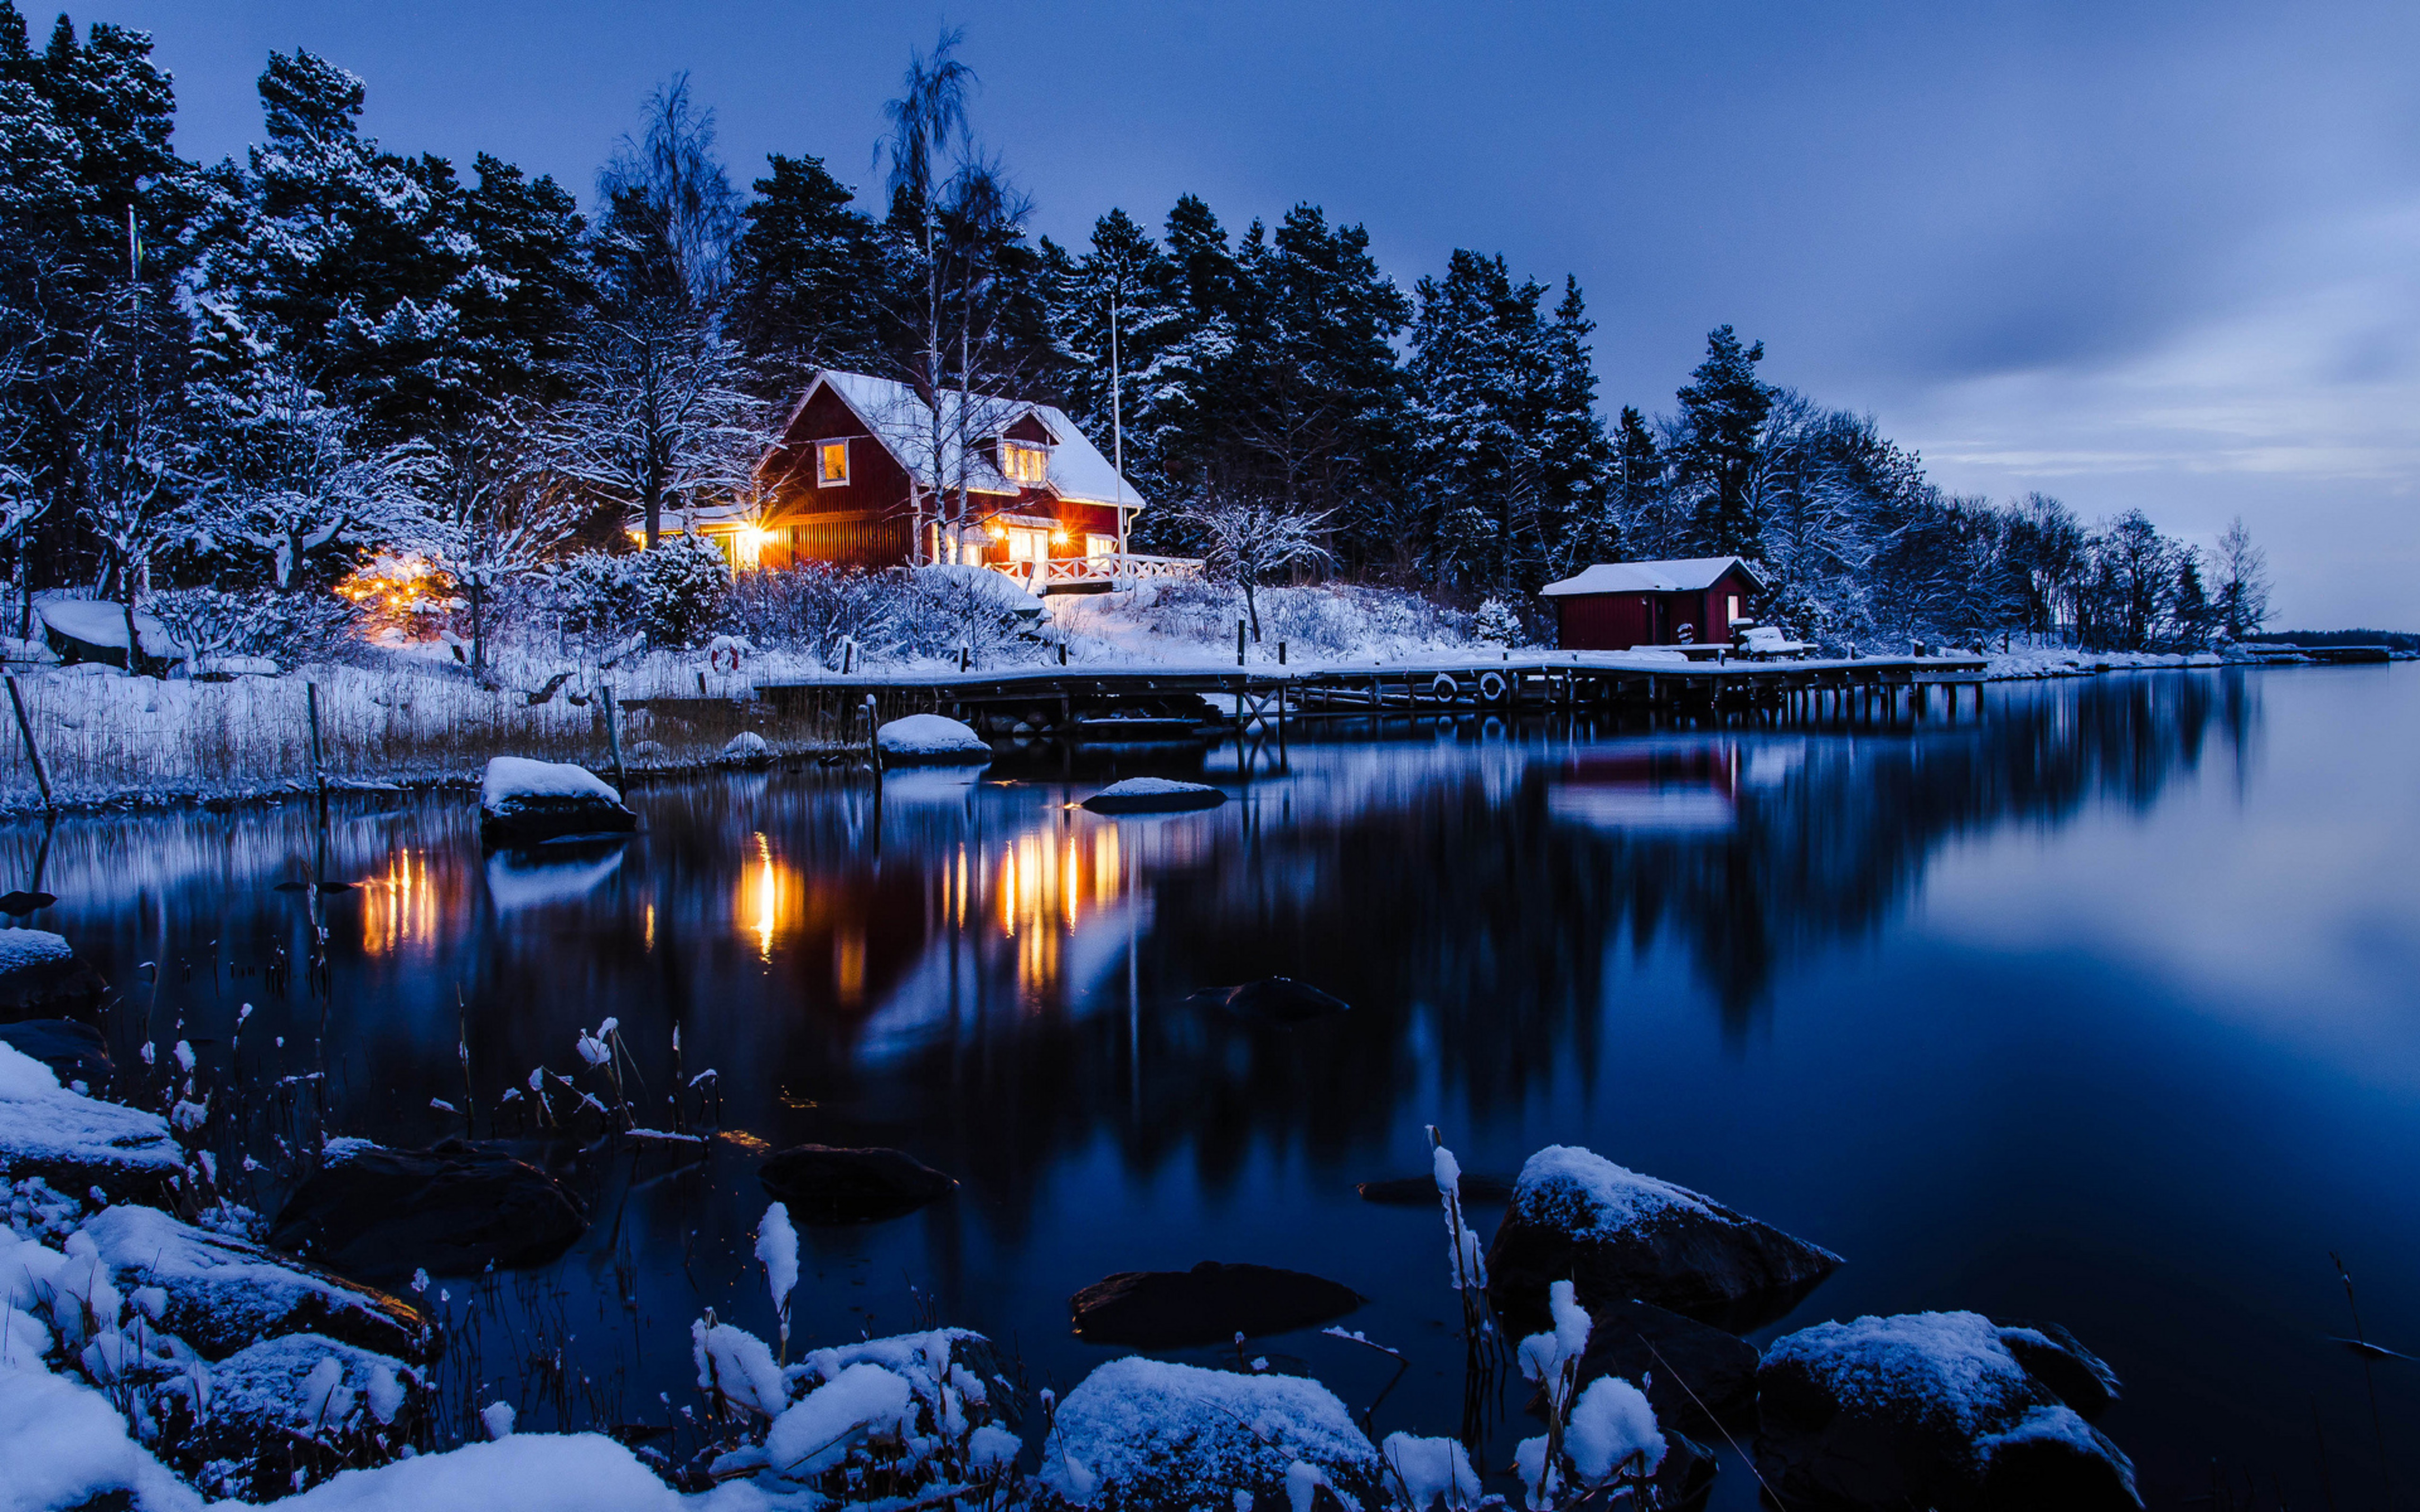 Haus am see wallpaper  Lake House in Winter 5k Retina Ultra HD Wallpaper and Hintergrund ...